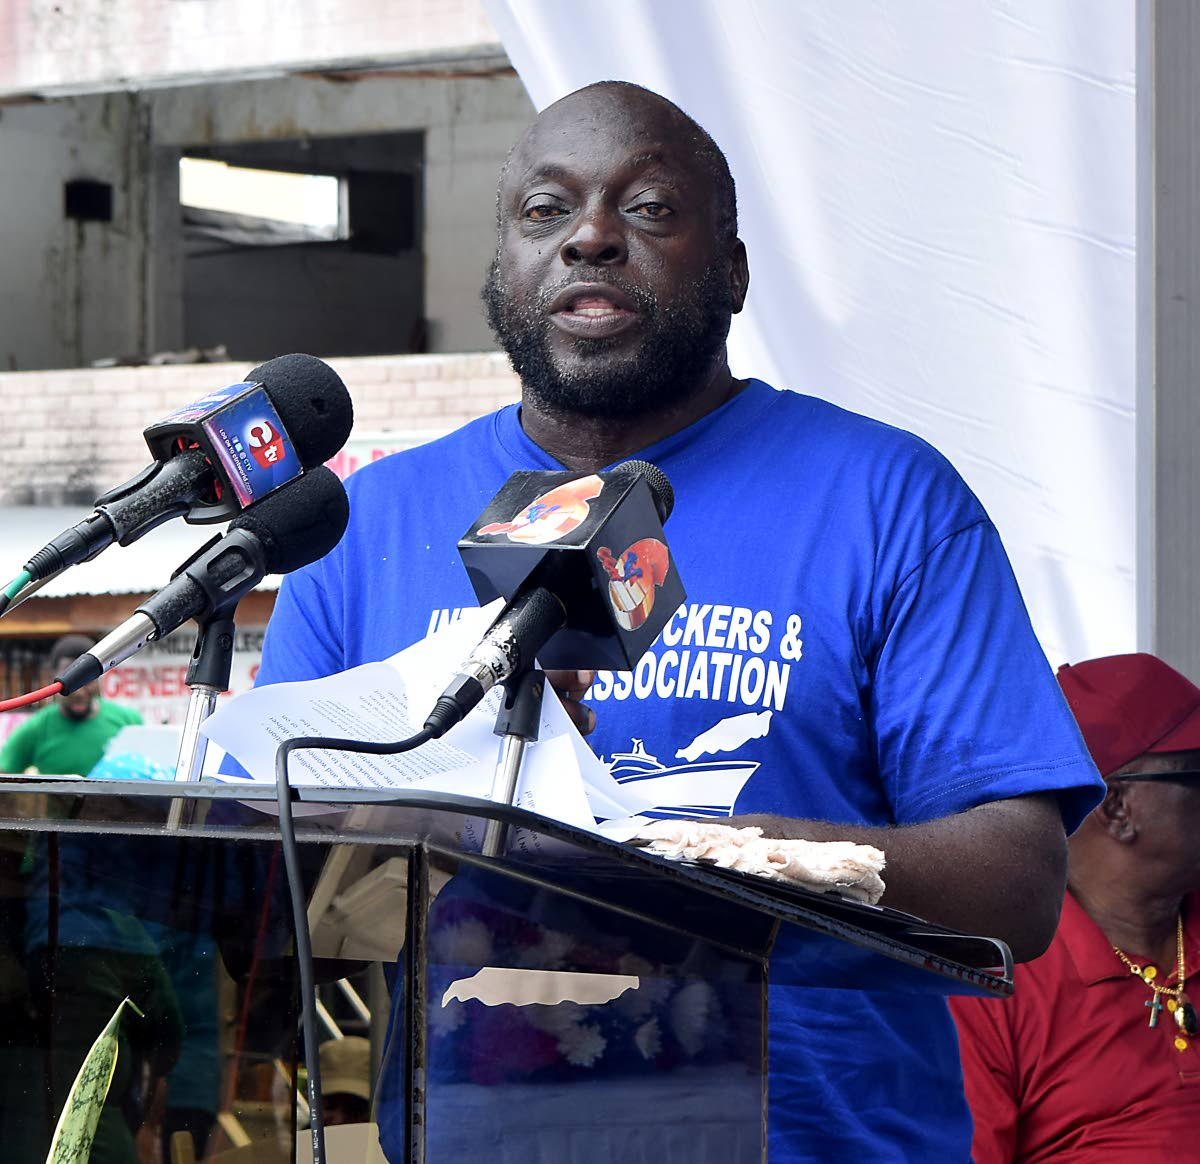 Horace Amede, President of the Inter-isle Truckers and Traders Association speaks at the First Historic Labour Day march in Tobago, attended by member unions of the National Trade Union Centre of TT (NATUC), at James Park on Tuesday, Labour Day.